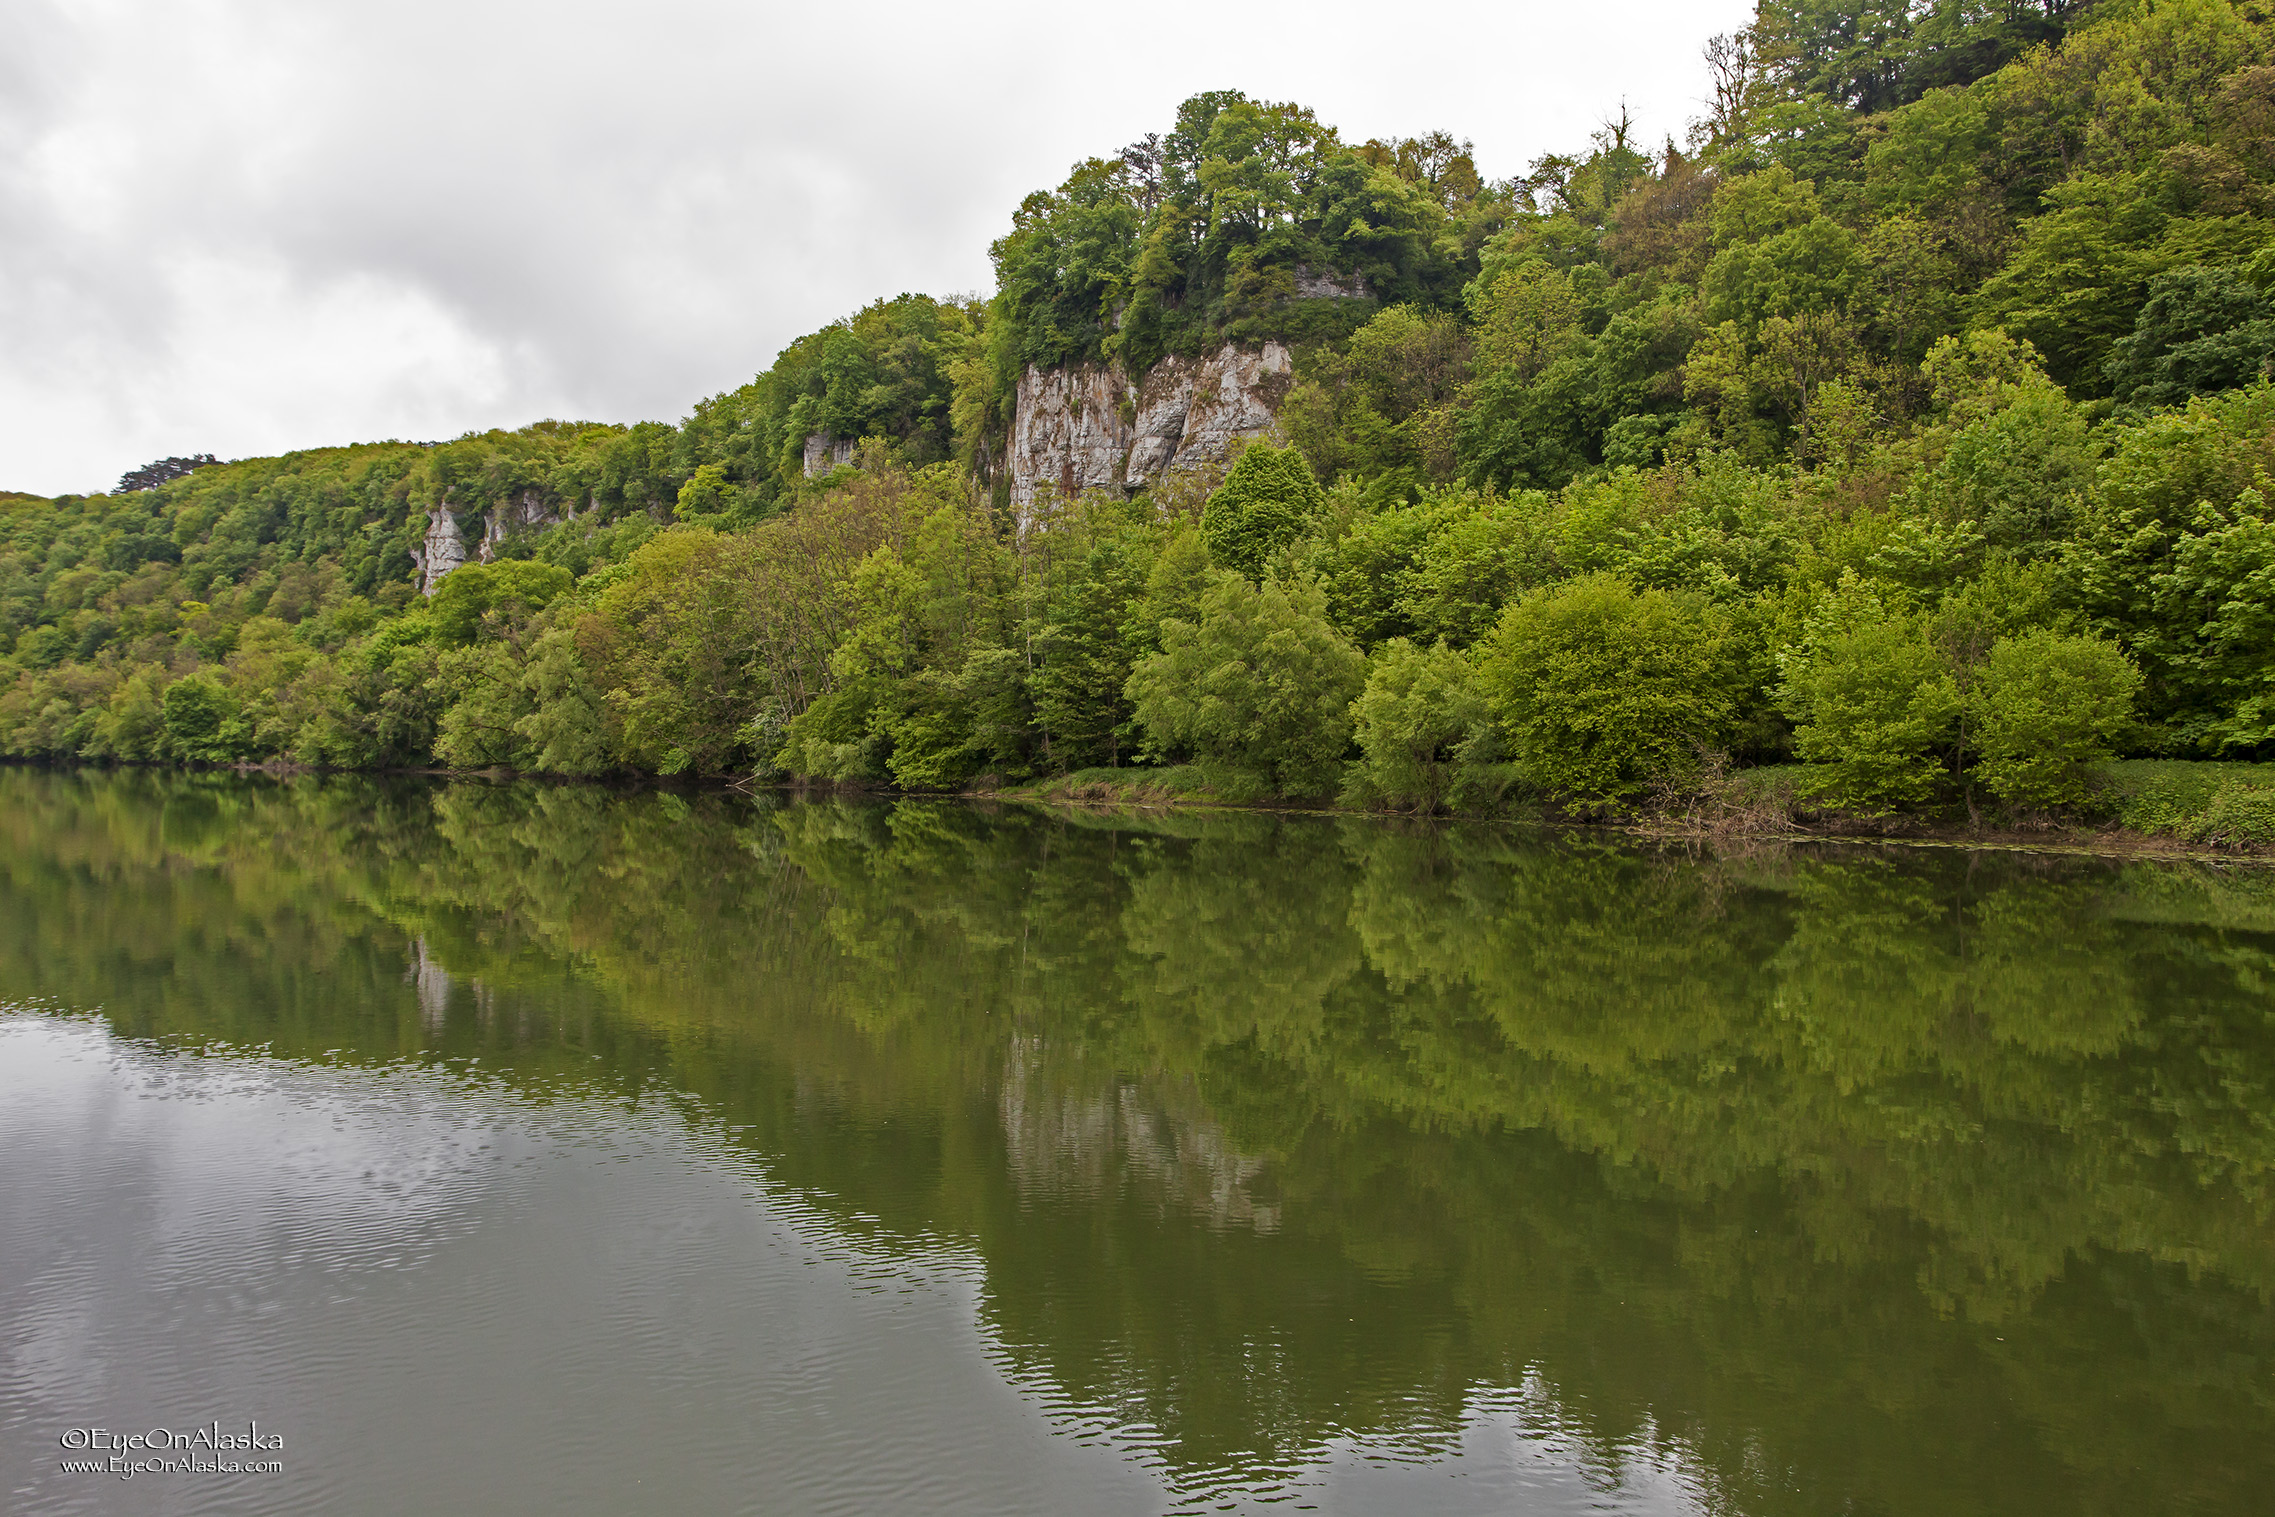 The cliffs along the Doubs river keep growing as work our way towards Besançon.  It's beautiful country.